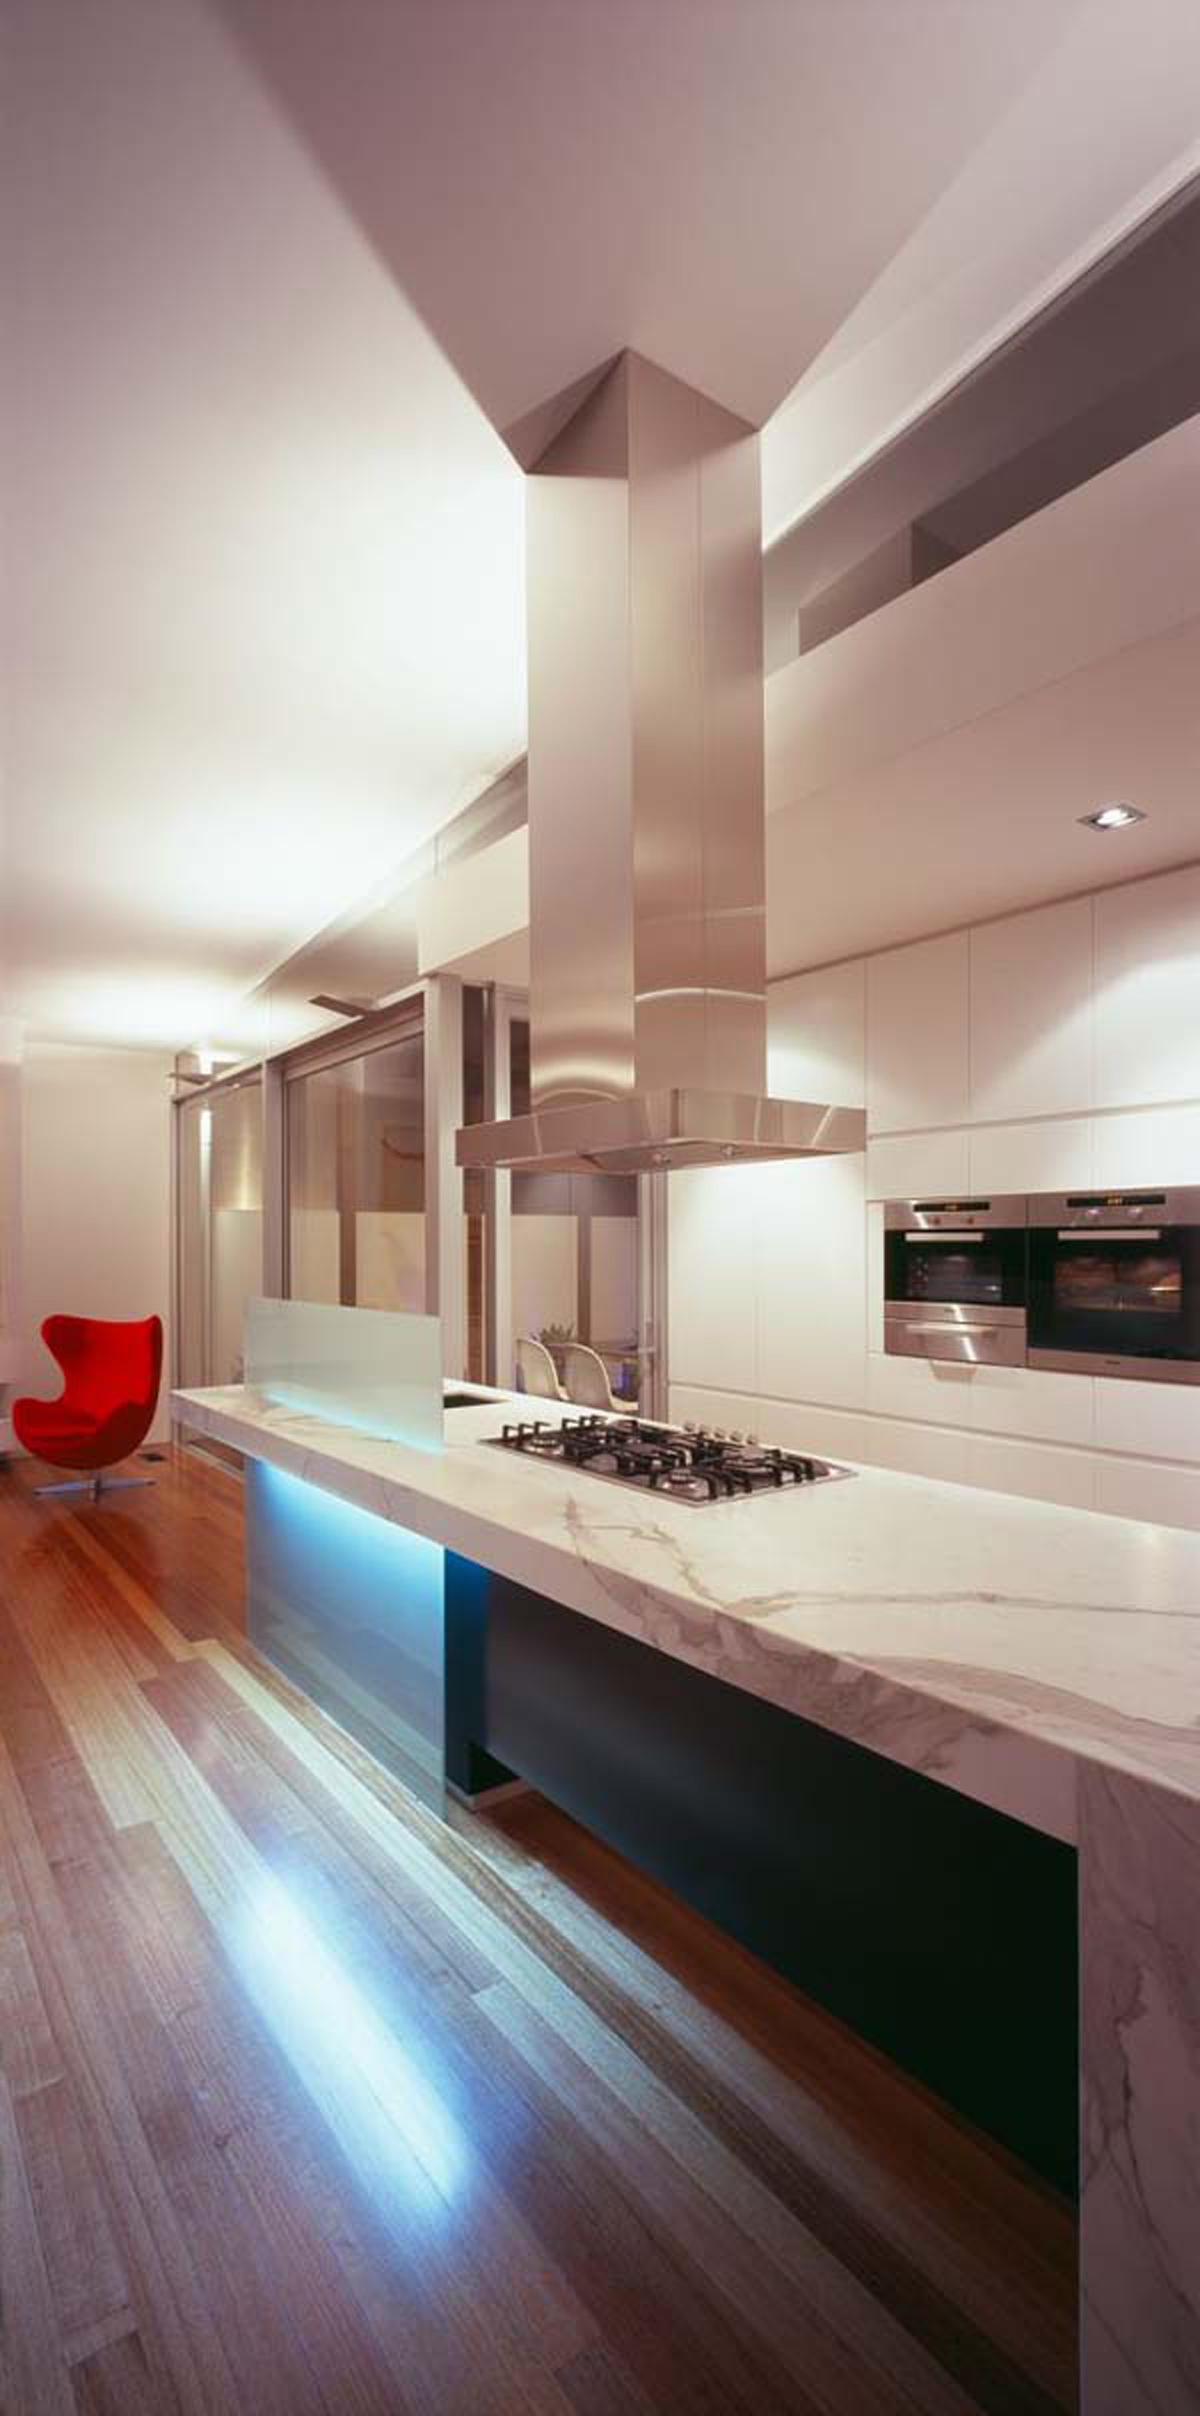 The Redmond Street Houses, Beautiful Symmetrical Construction Residence - Kitchen